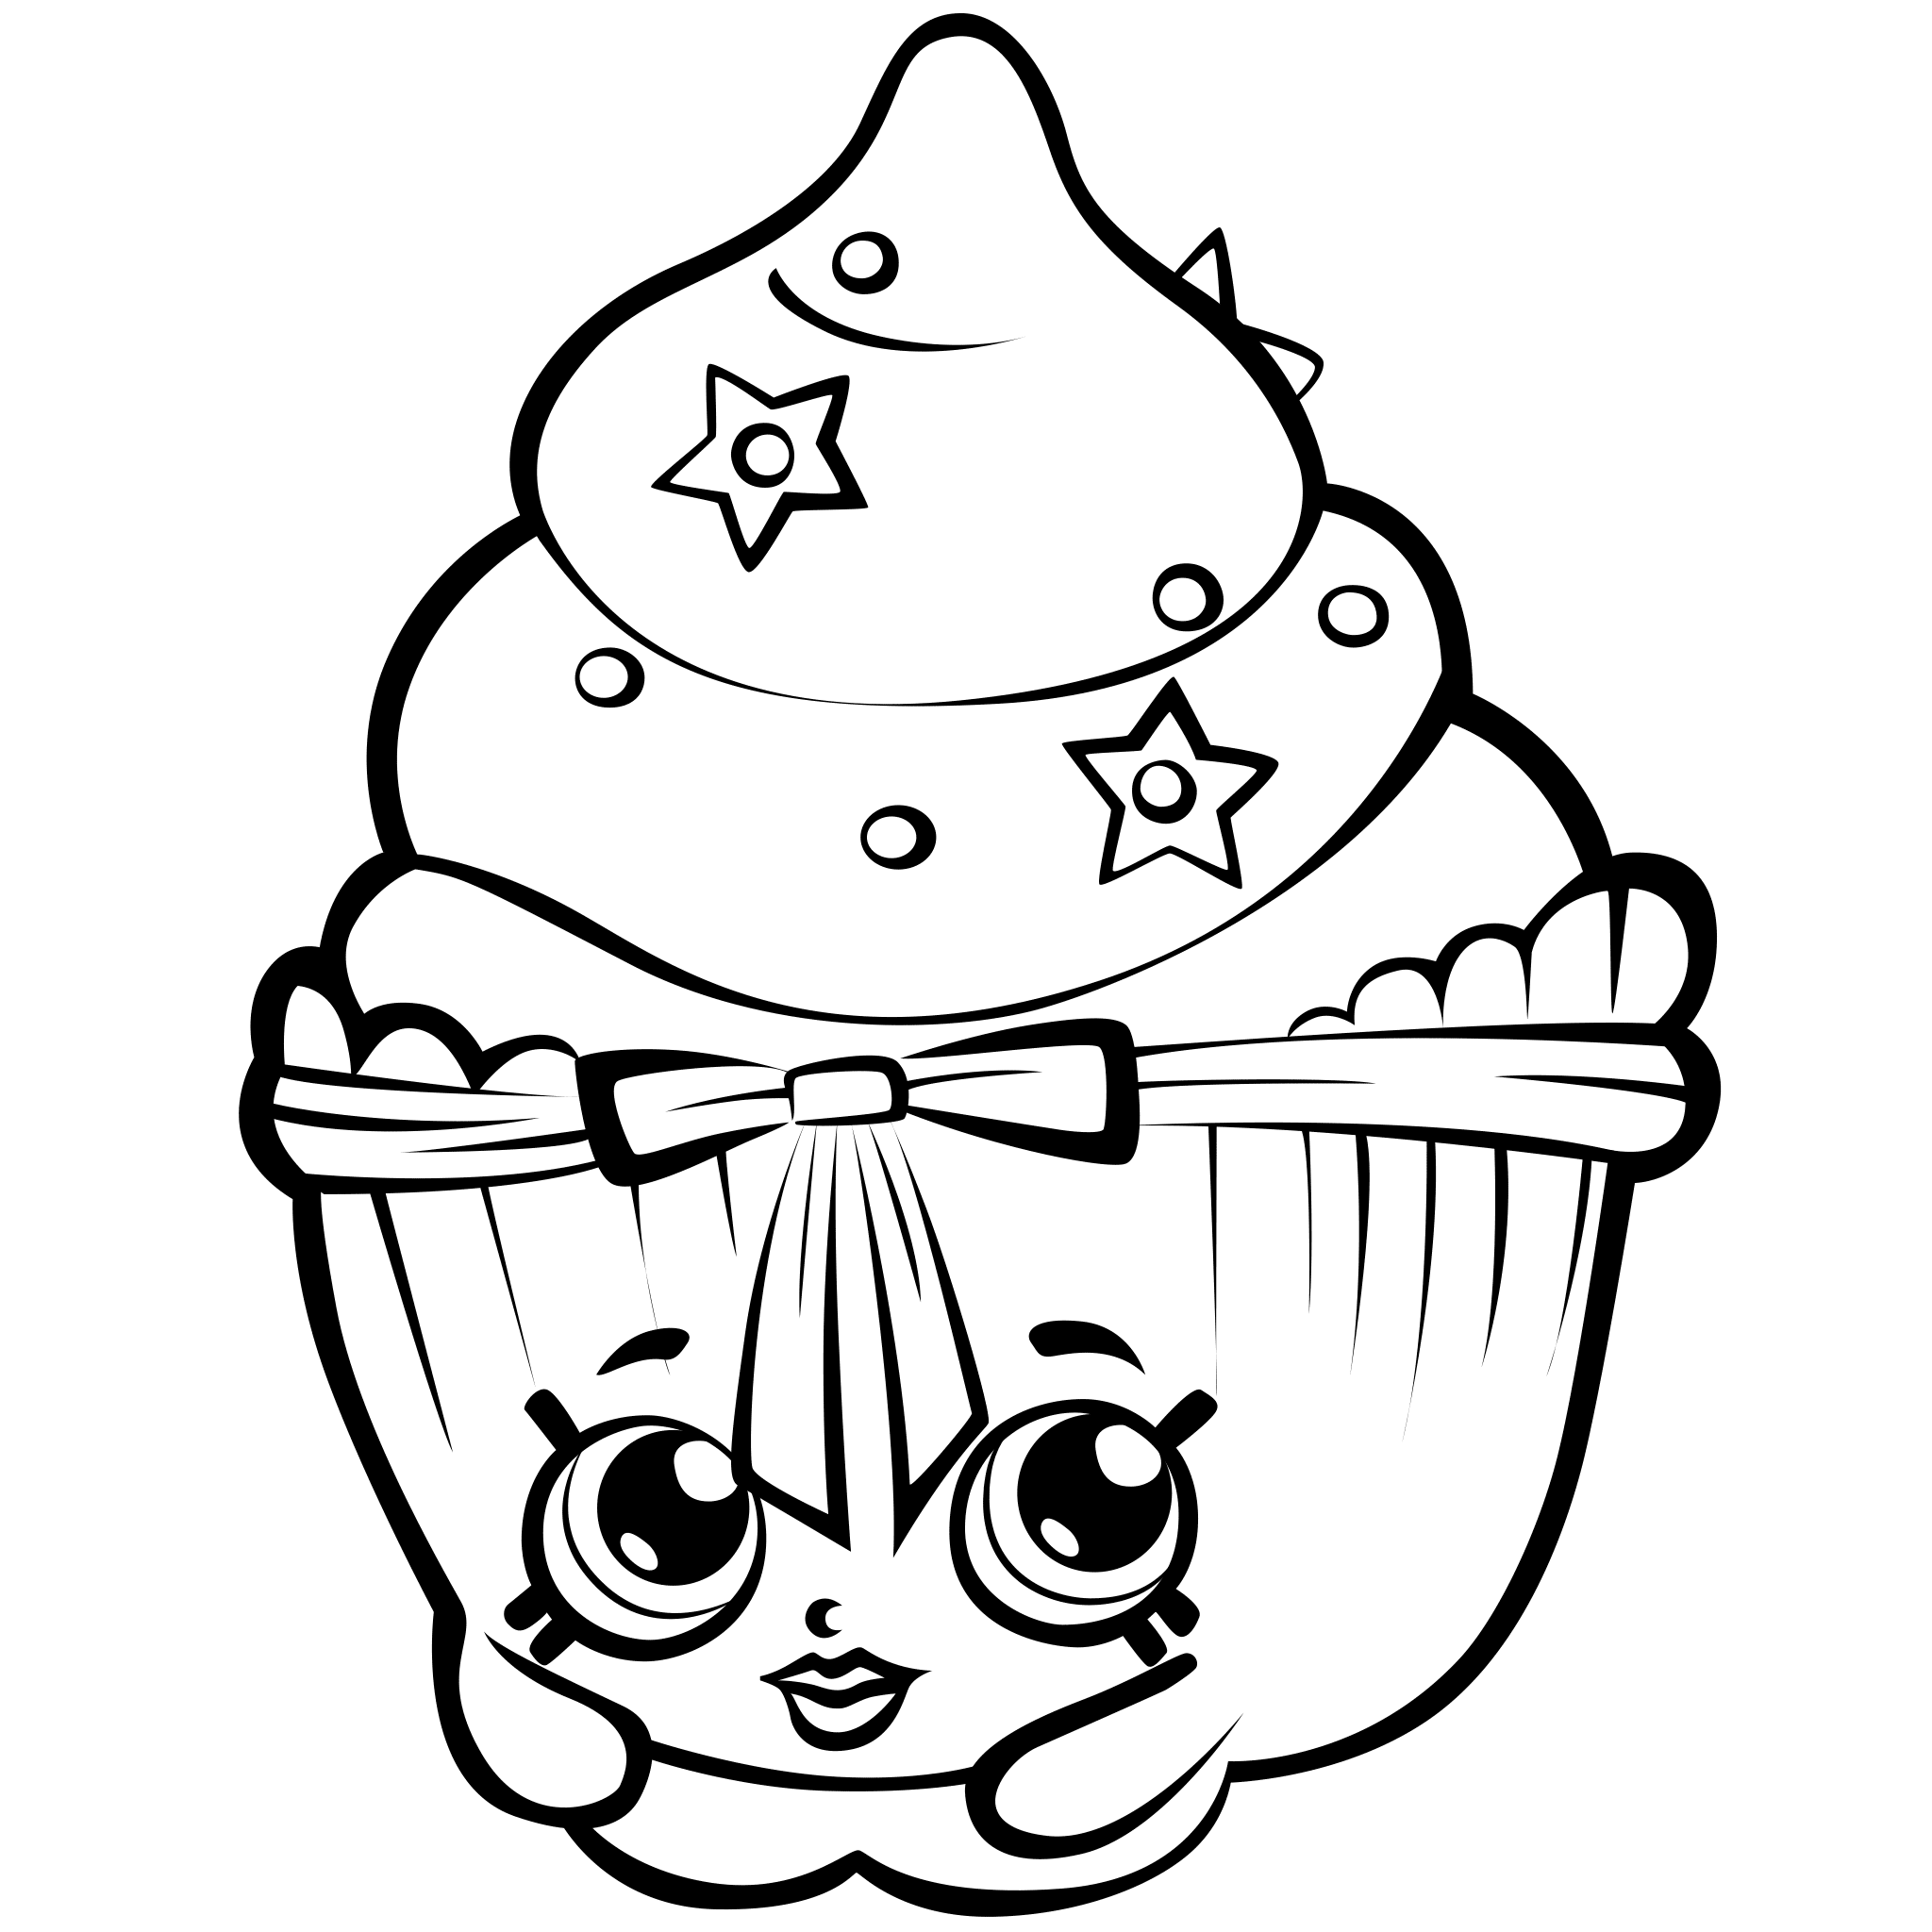 all coloring sheets coloring ville all sheets coloring